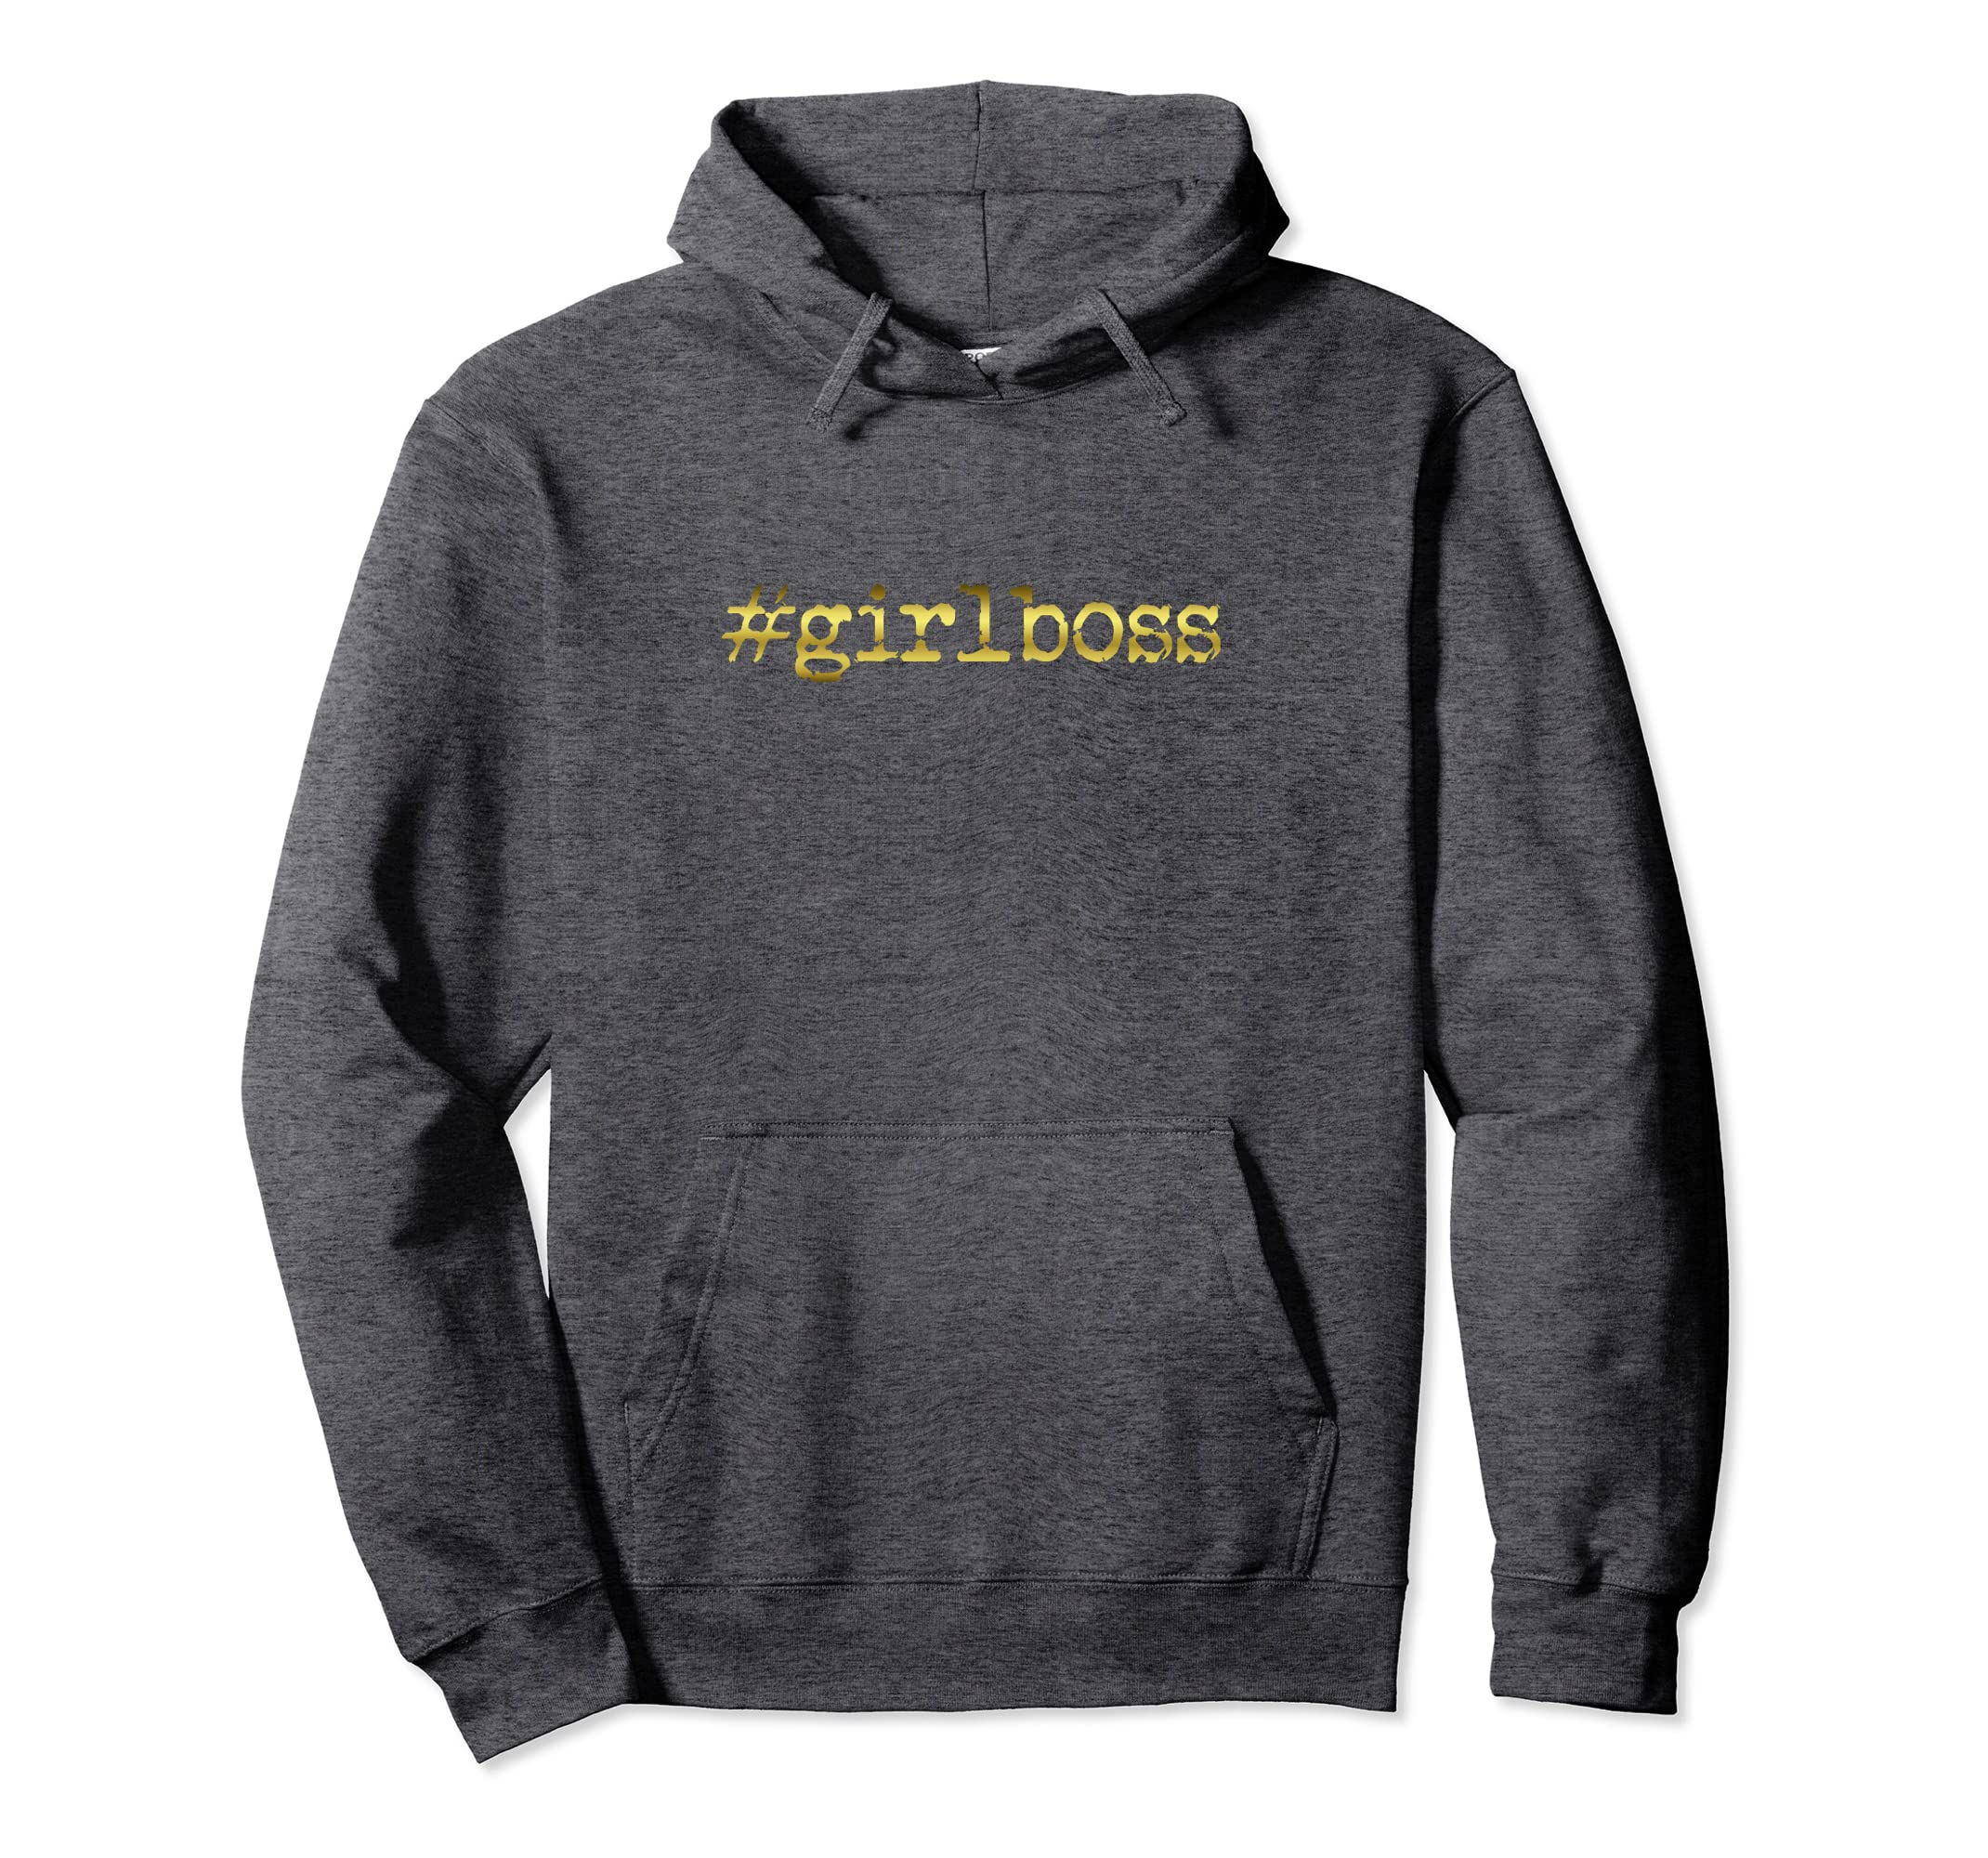 #girlboss Hoodie for Girls who are the Boss